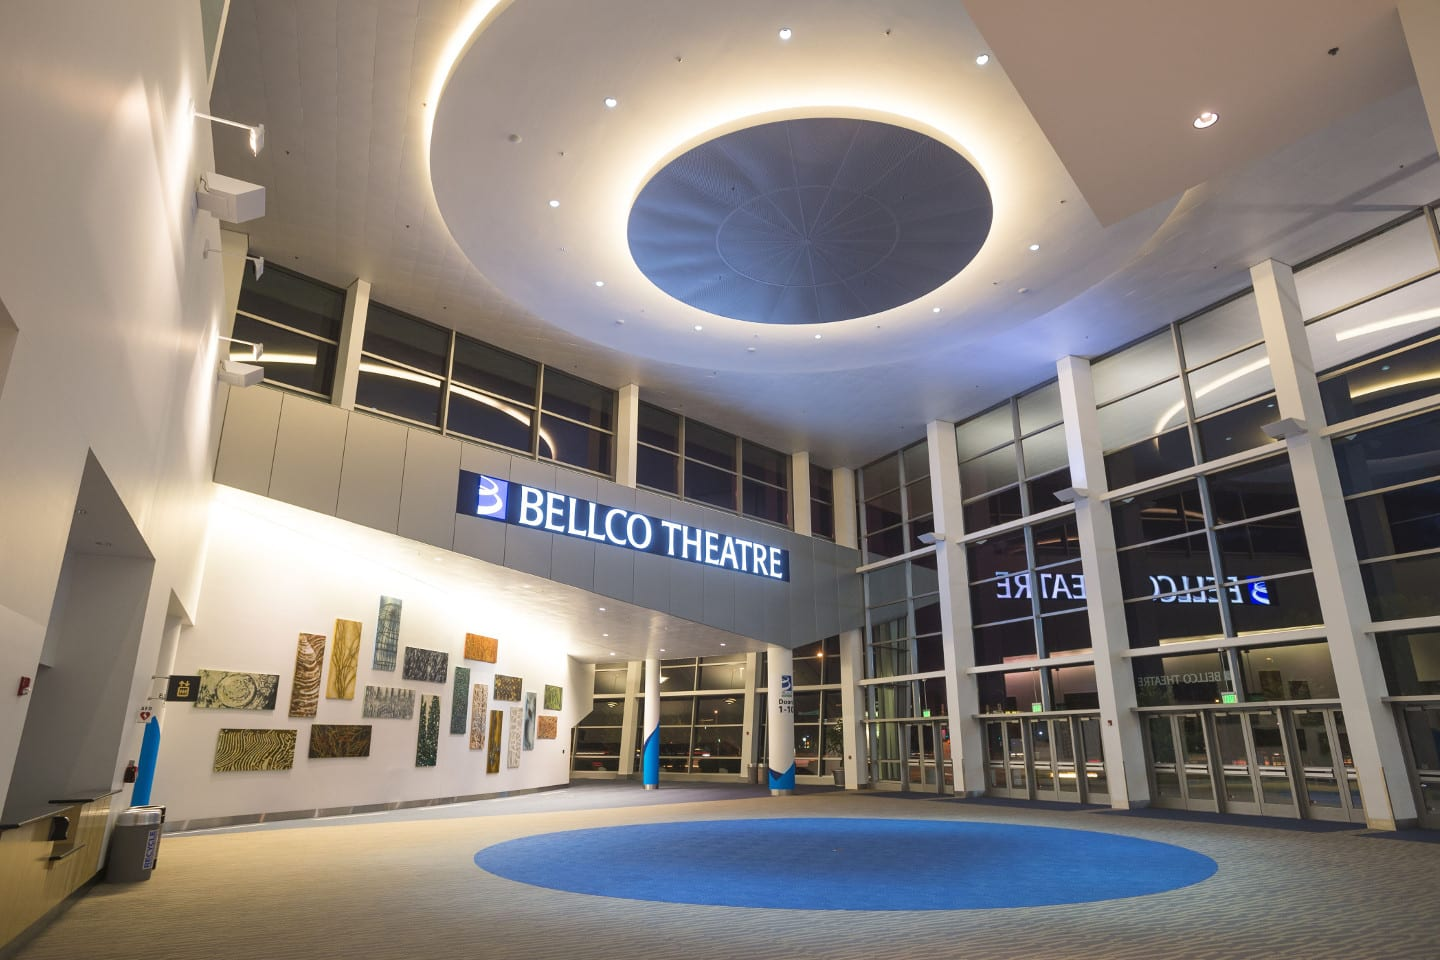 Bellco Theatre Denver Interior Entrance